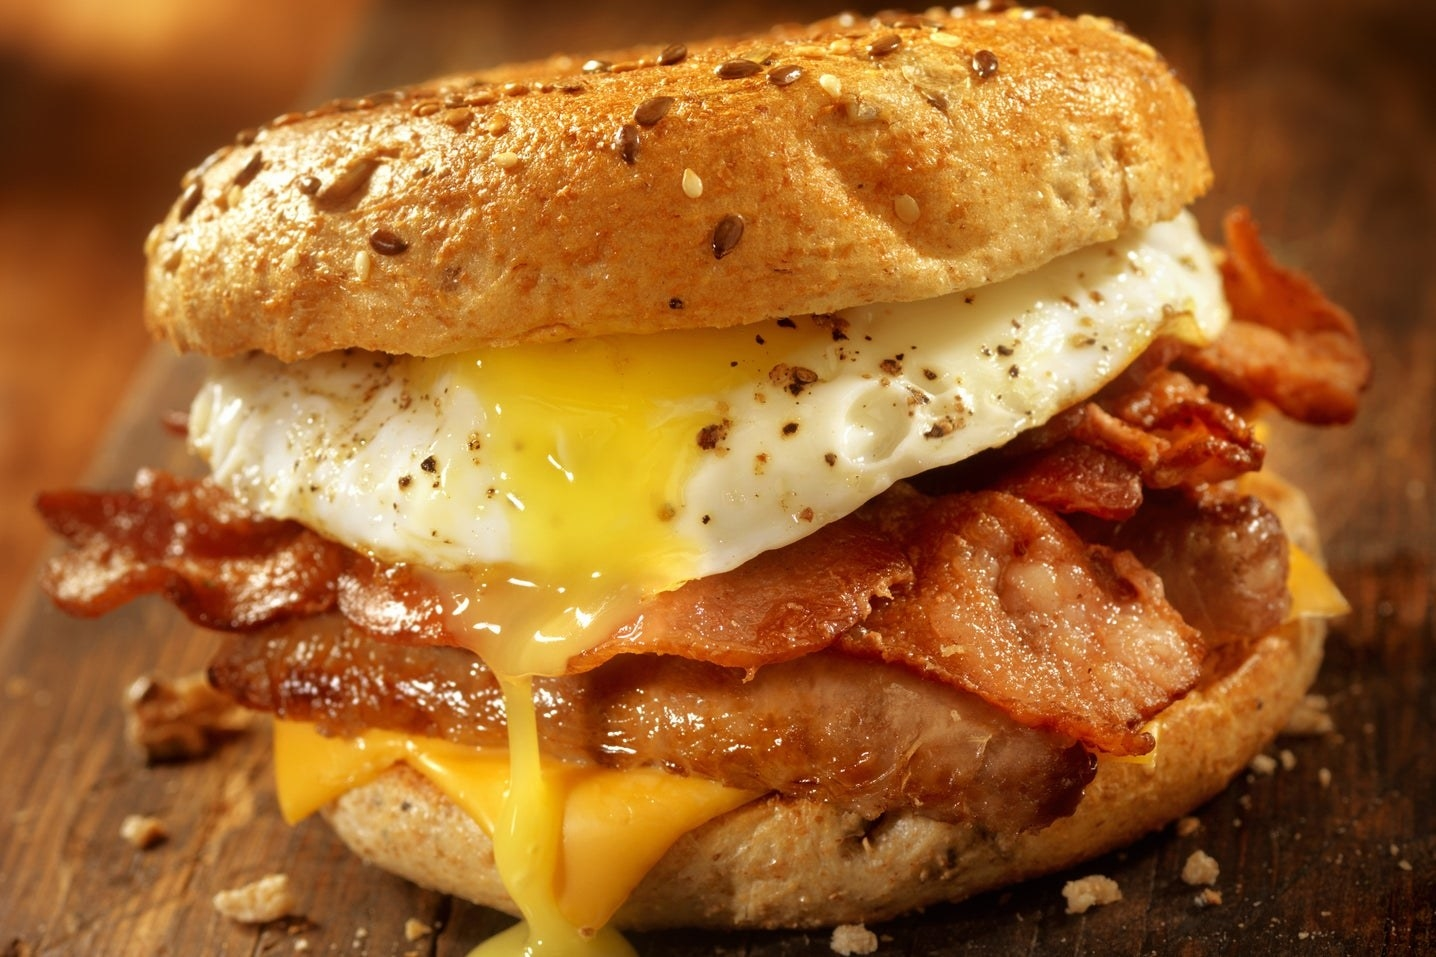 Breakfast sandwich with eggs, bacon, and cheese.